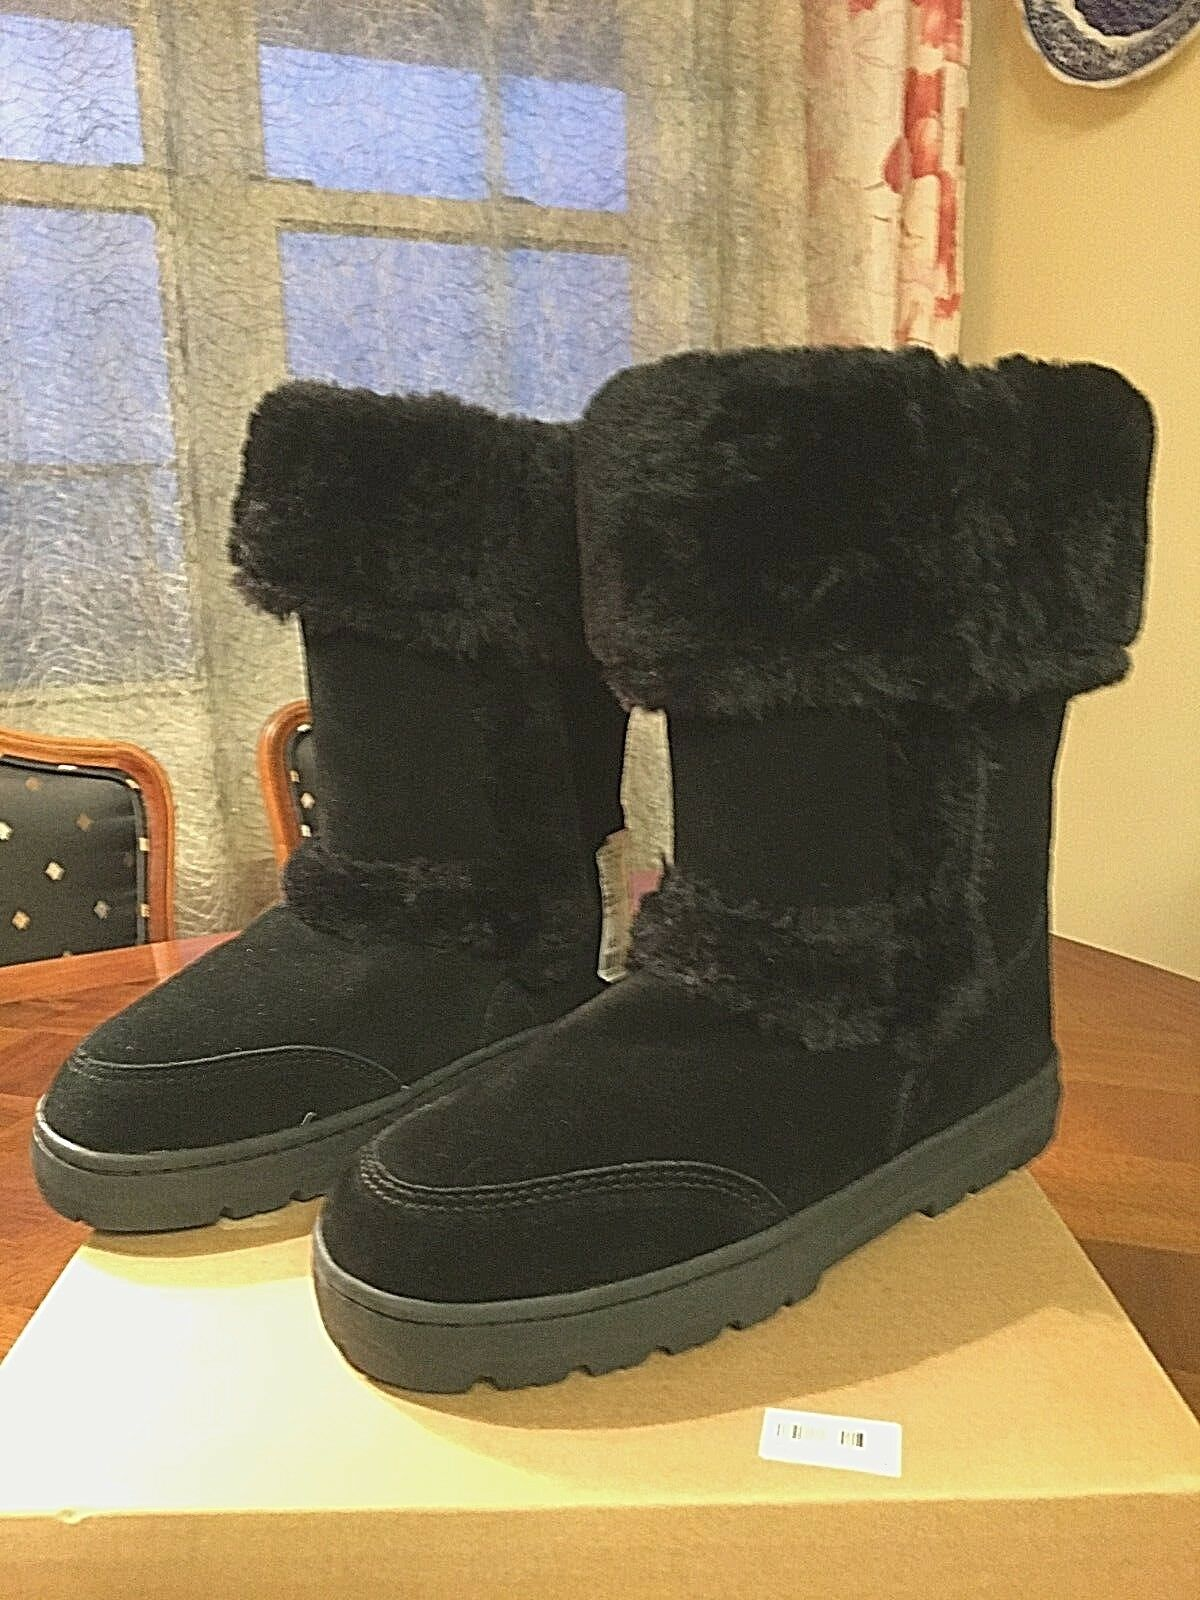 NEW Woman's Warm Genuine Suede Uppers, Faux Fur Linning Witty Black Booties 6M